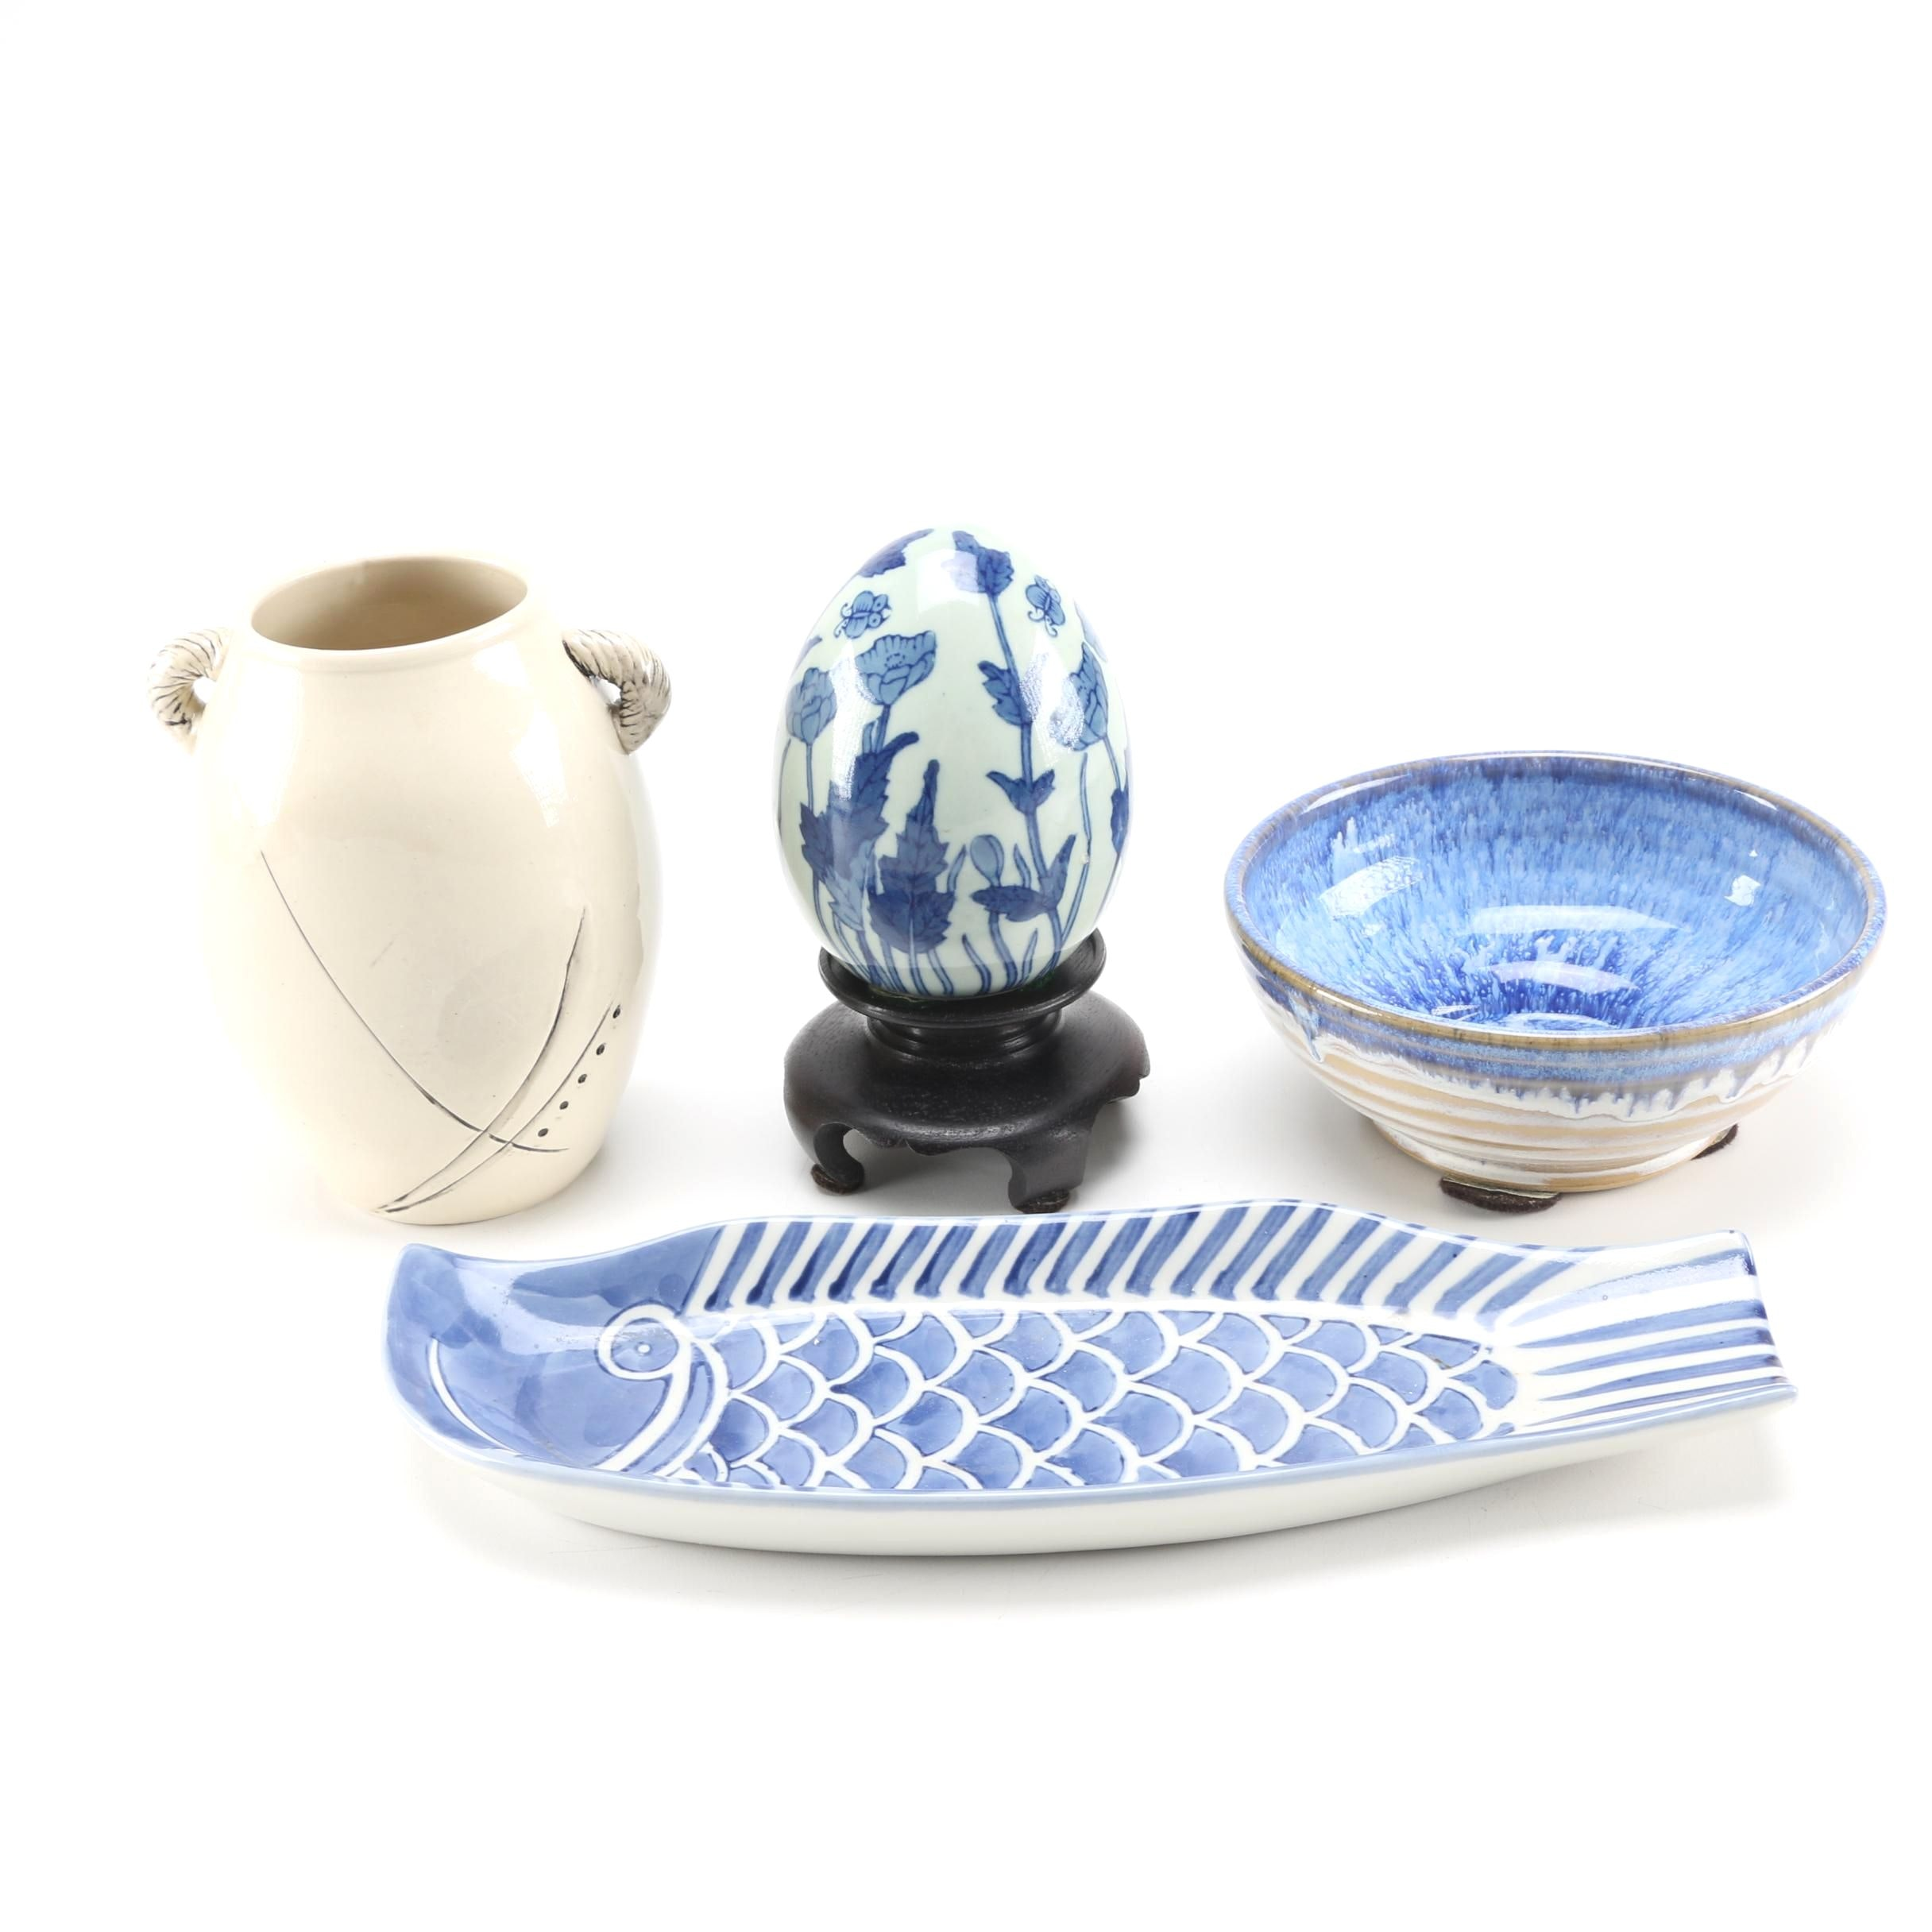 Assortment of Handmade Pottery